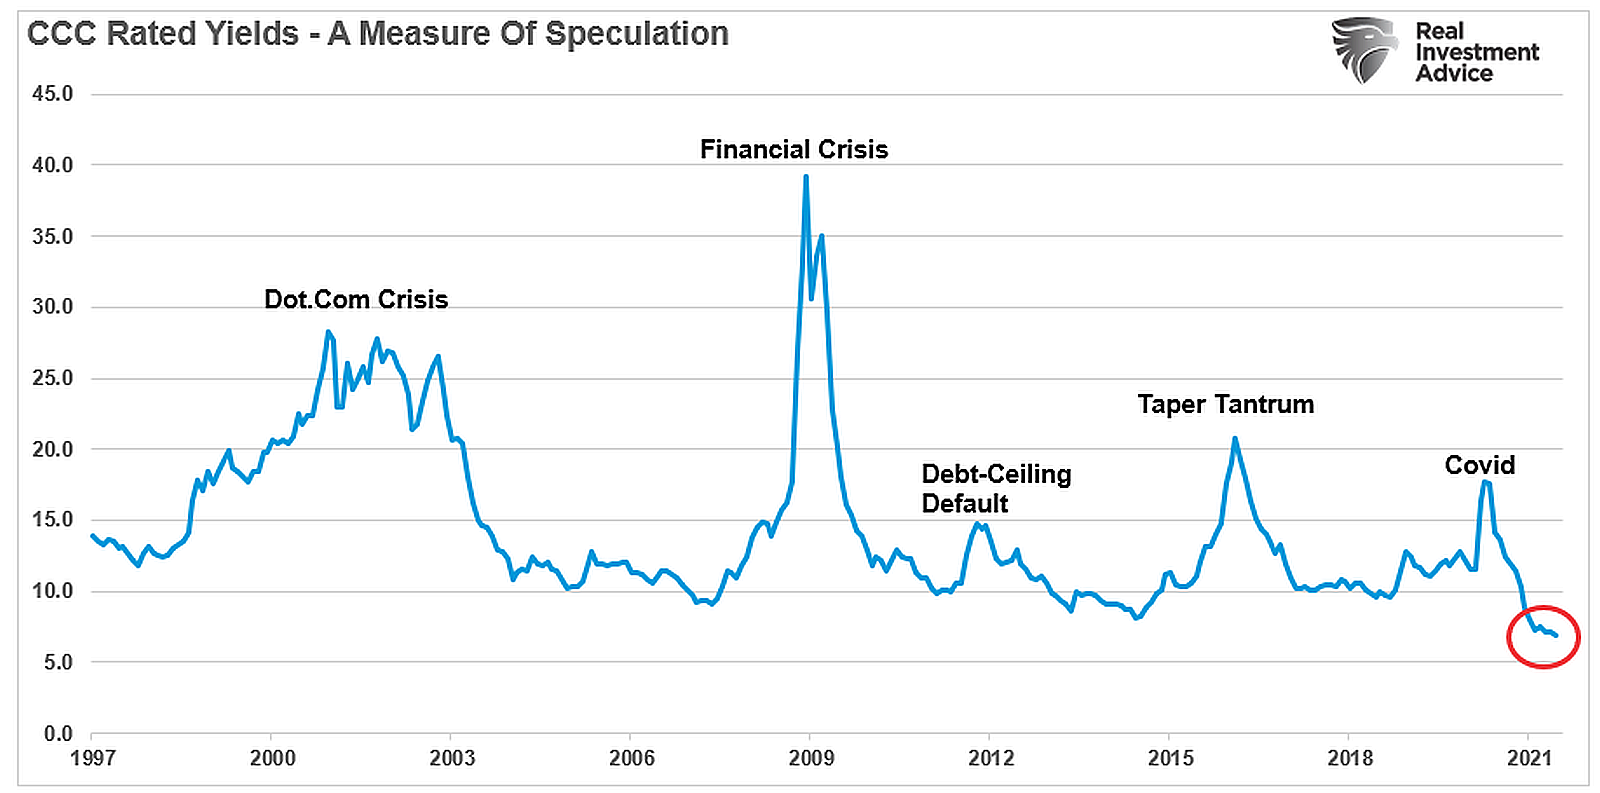 CCC-Rated-Yields-A-Measure-Of-Speculation